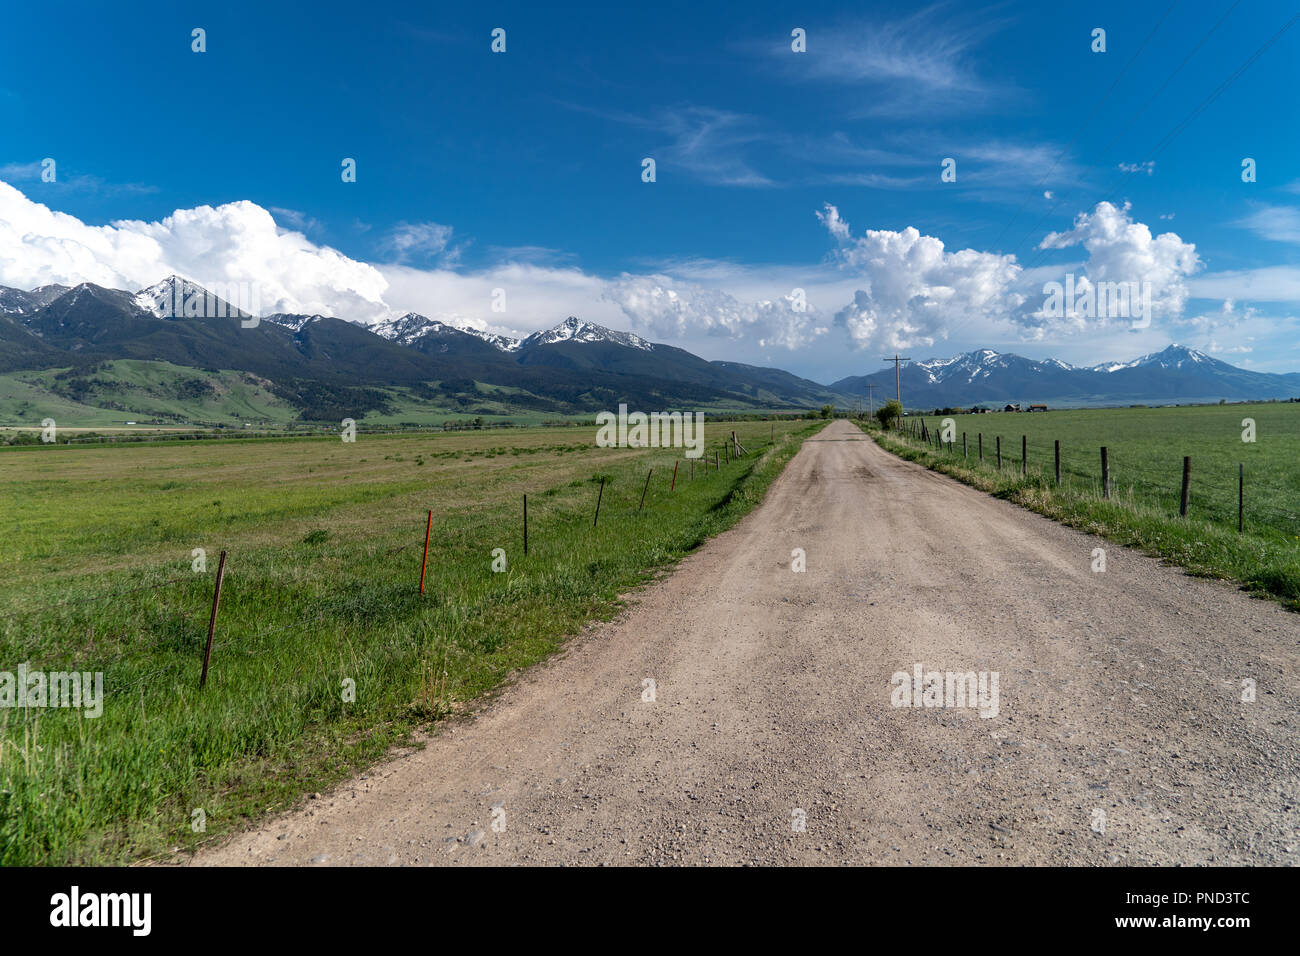 Gravel dirt road with power lines leading into the Absaroka Mountains near Livingston Montana in Paradise Valley. Lush green vegetation and clouds - Stock Image